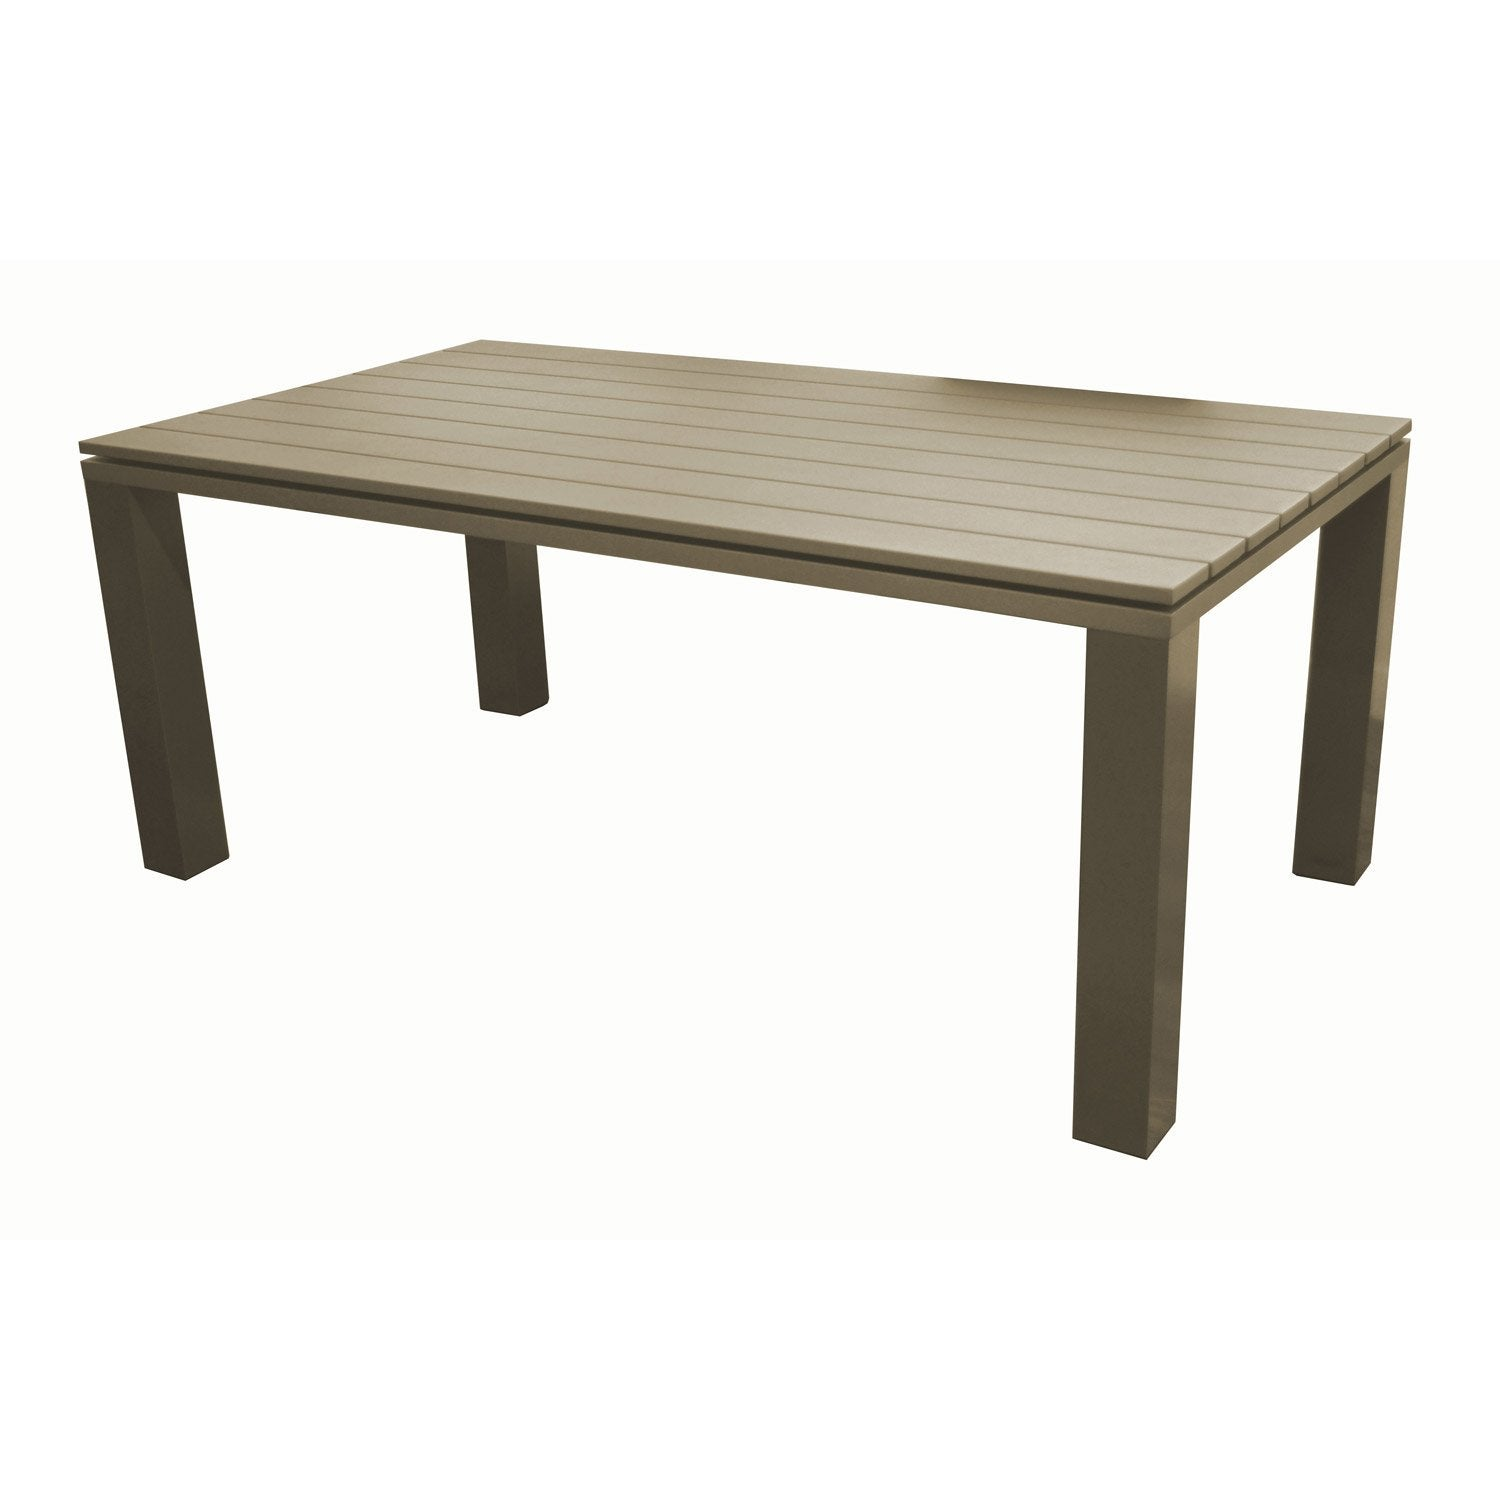 Table de jardin elena rectangulaire taupe 8 personnes for Table de jardin 8 personnes